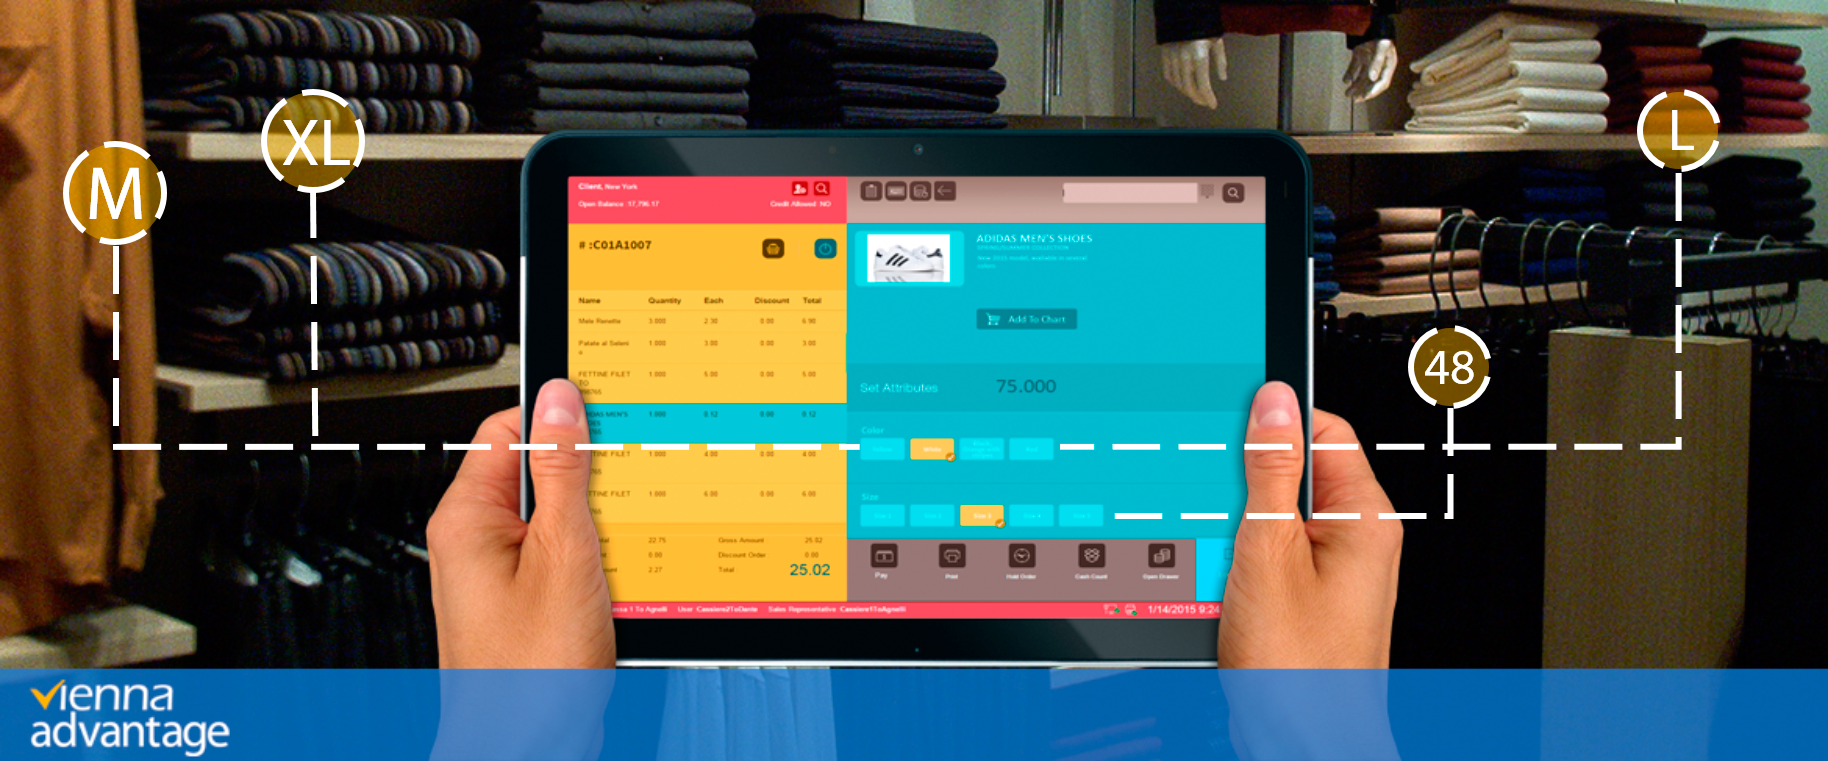 Using VIENNA Advantage POS in Apparels Business